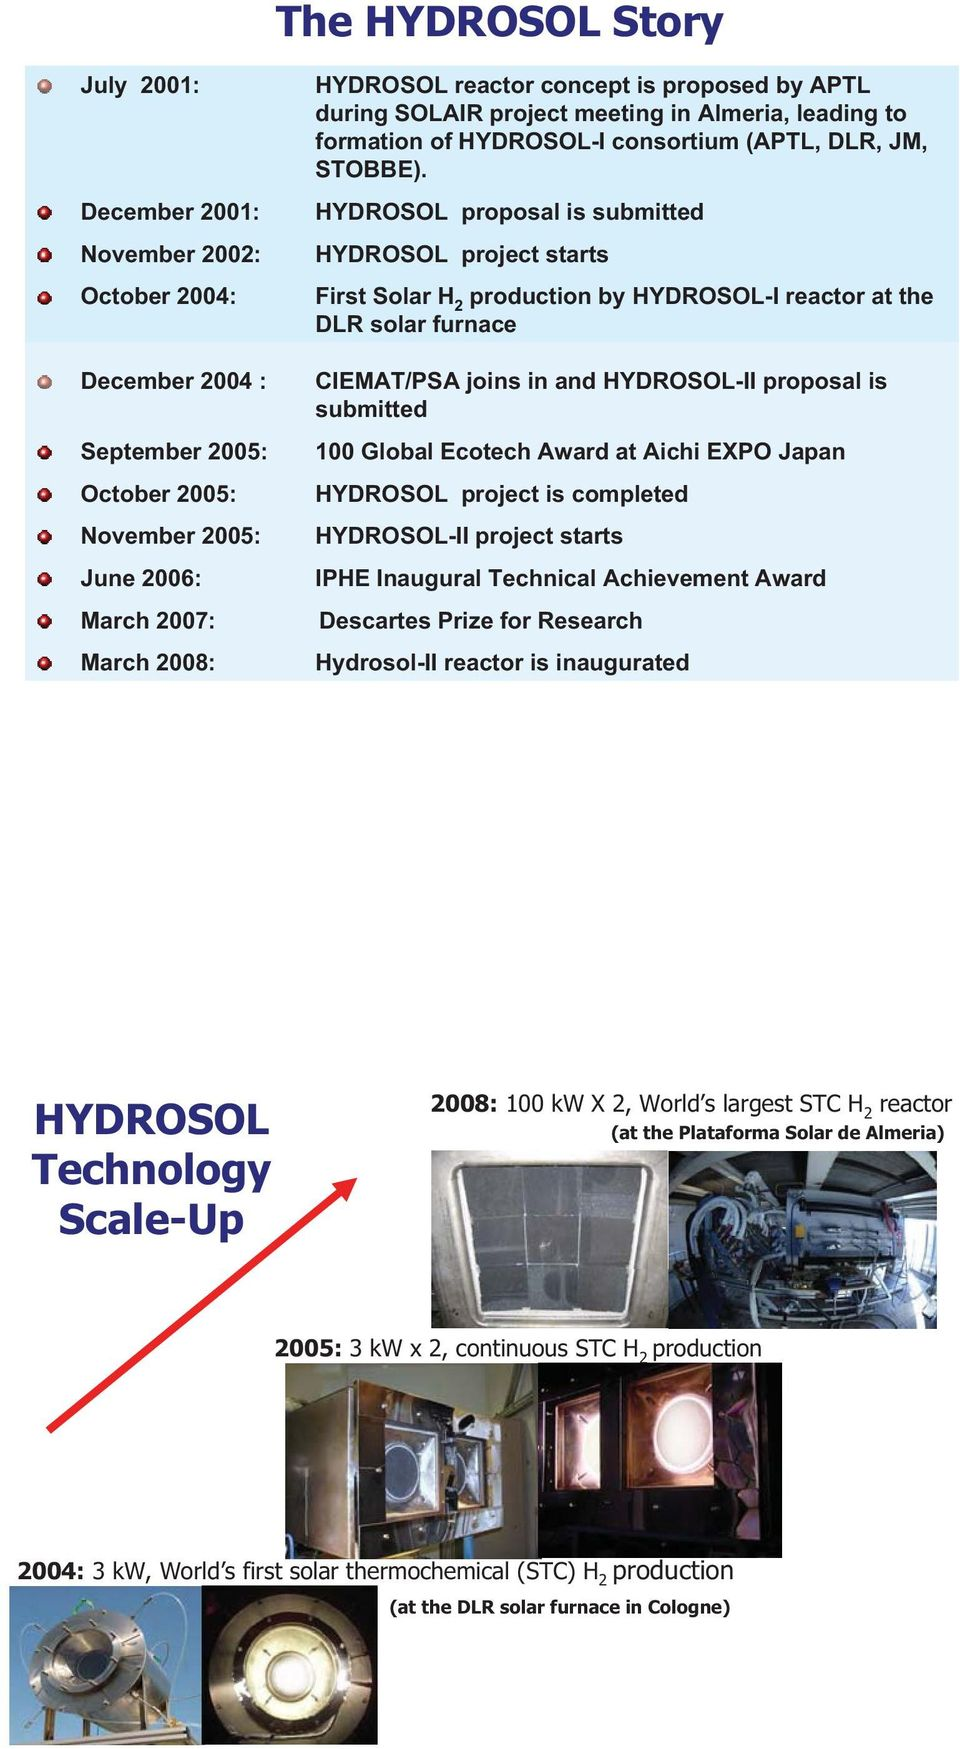 HYDROSOL proposal is submitted HYDROSOL project starts First Solar H 2 production by HYDROSOL-I reactor at the DLR solar furnace CIEMAT/PSA joins in and HYDROSOL-II proposal is submitted 100 Global